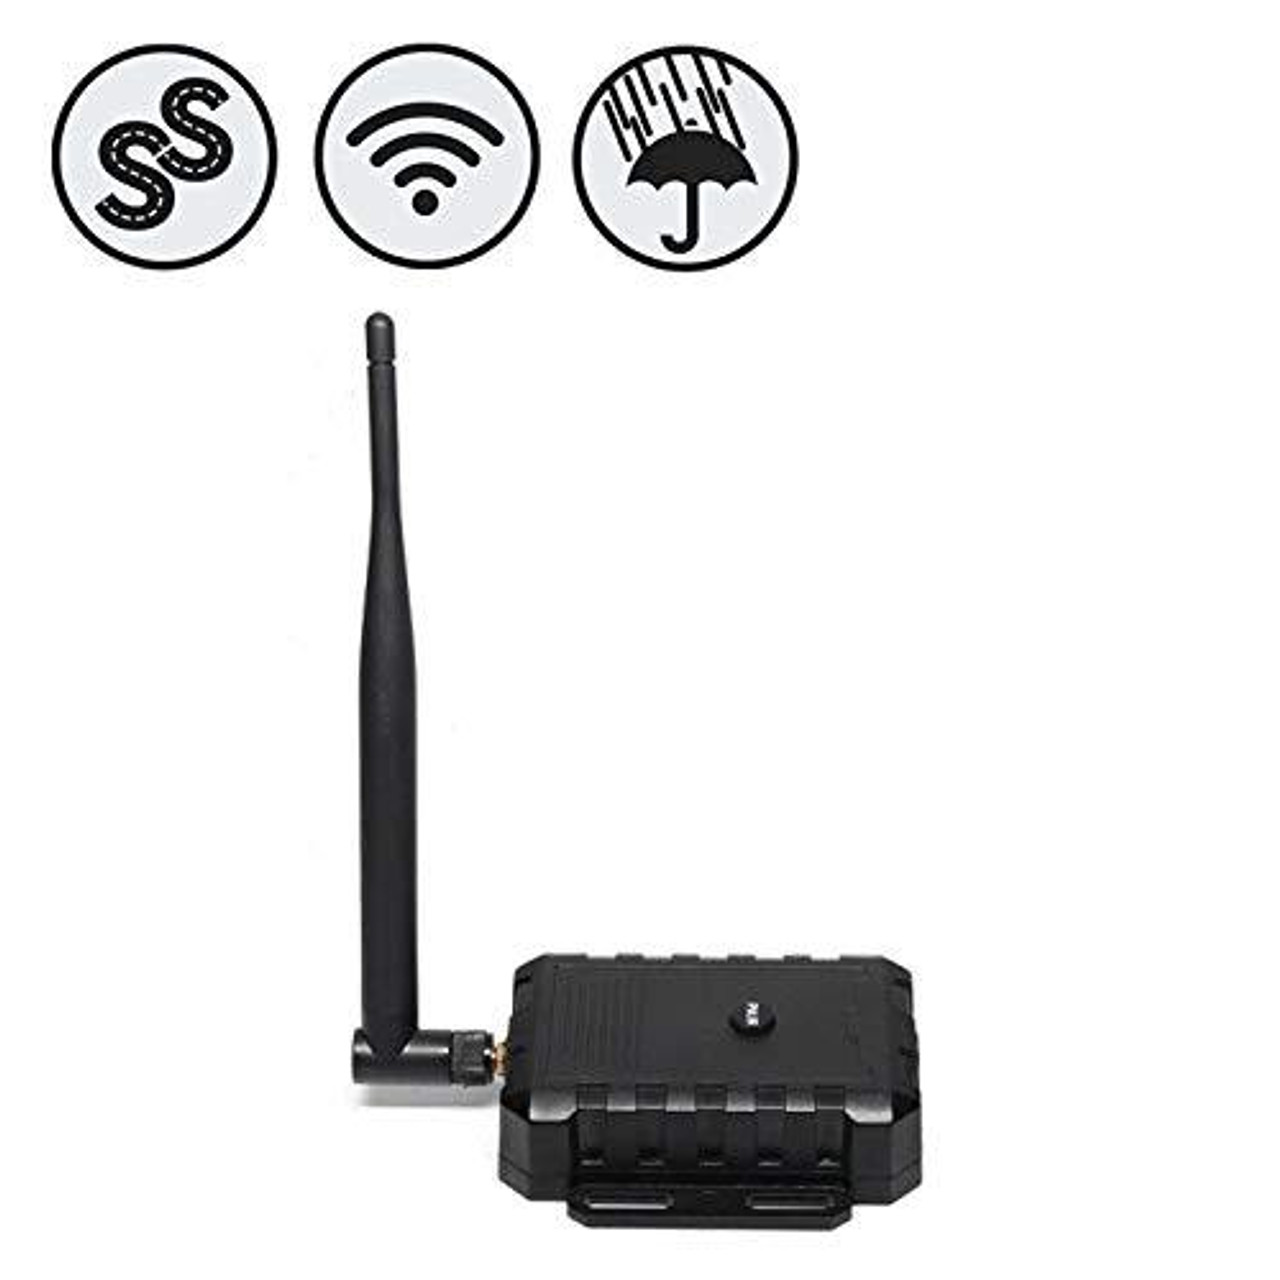 Waterproof Wireless Transmitter for SimpleSight Series